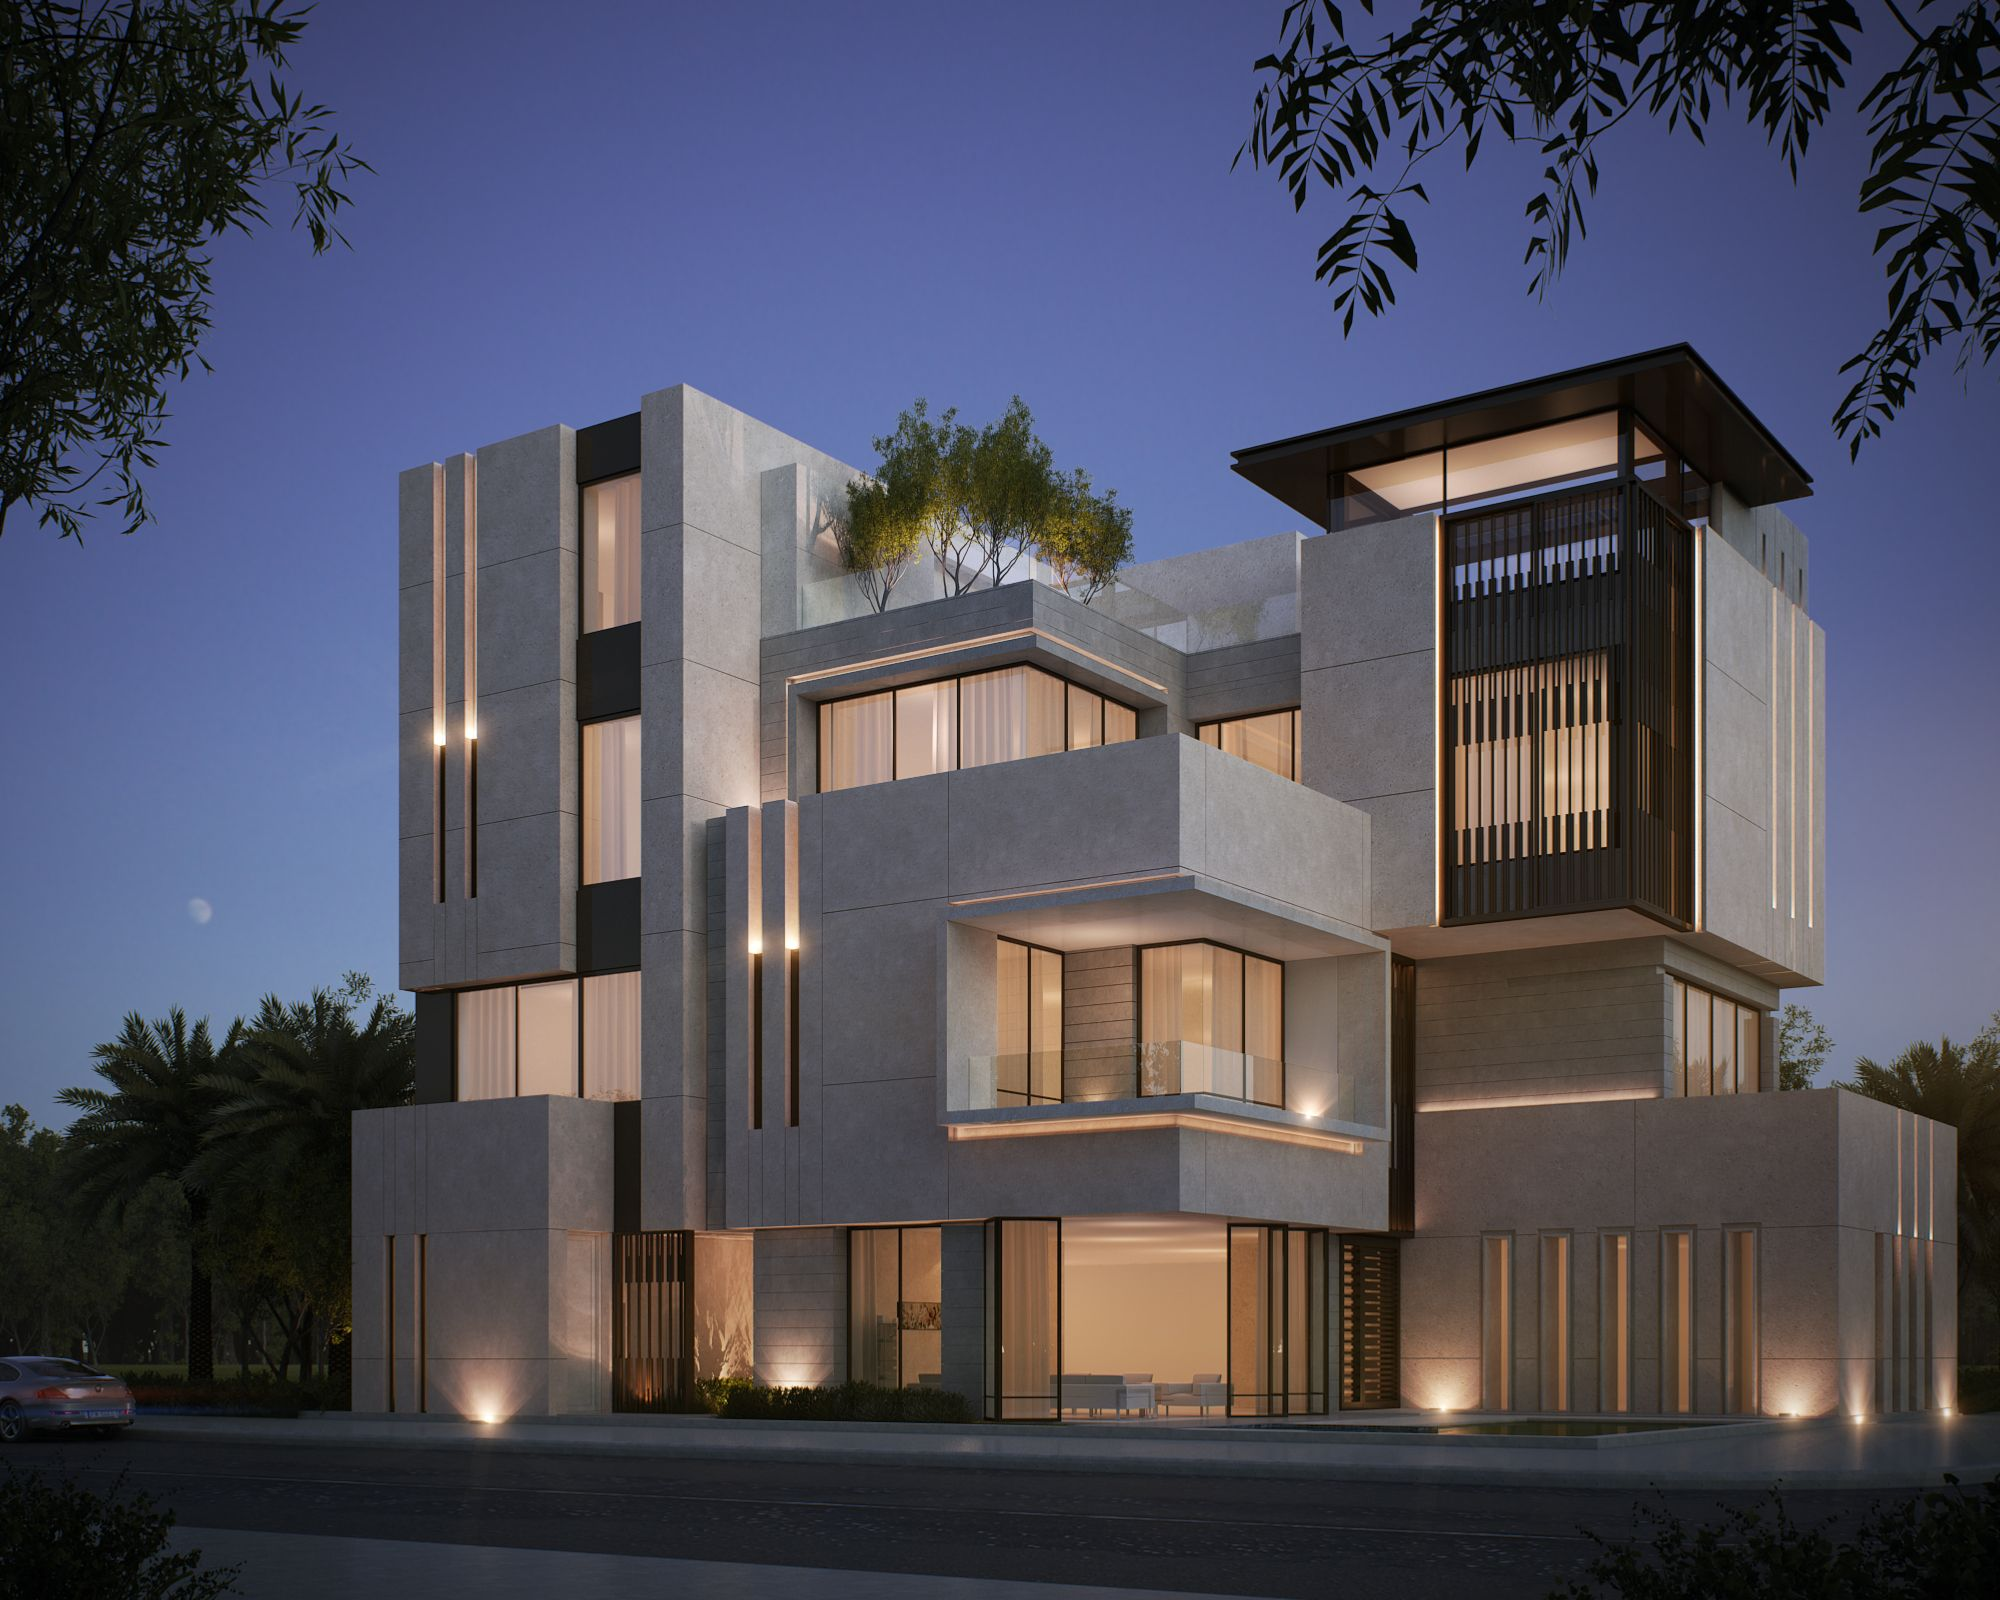 private villa 500 m kuwait sarah sadeq architects sarah